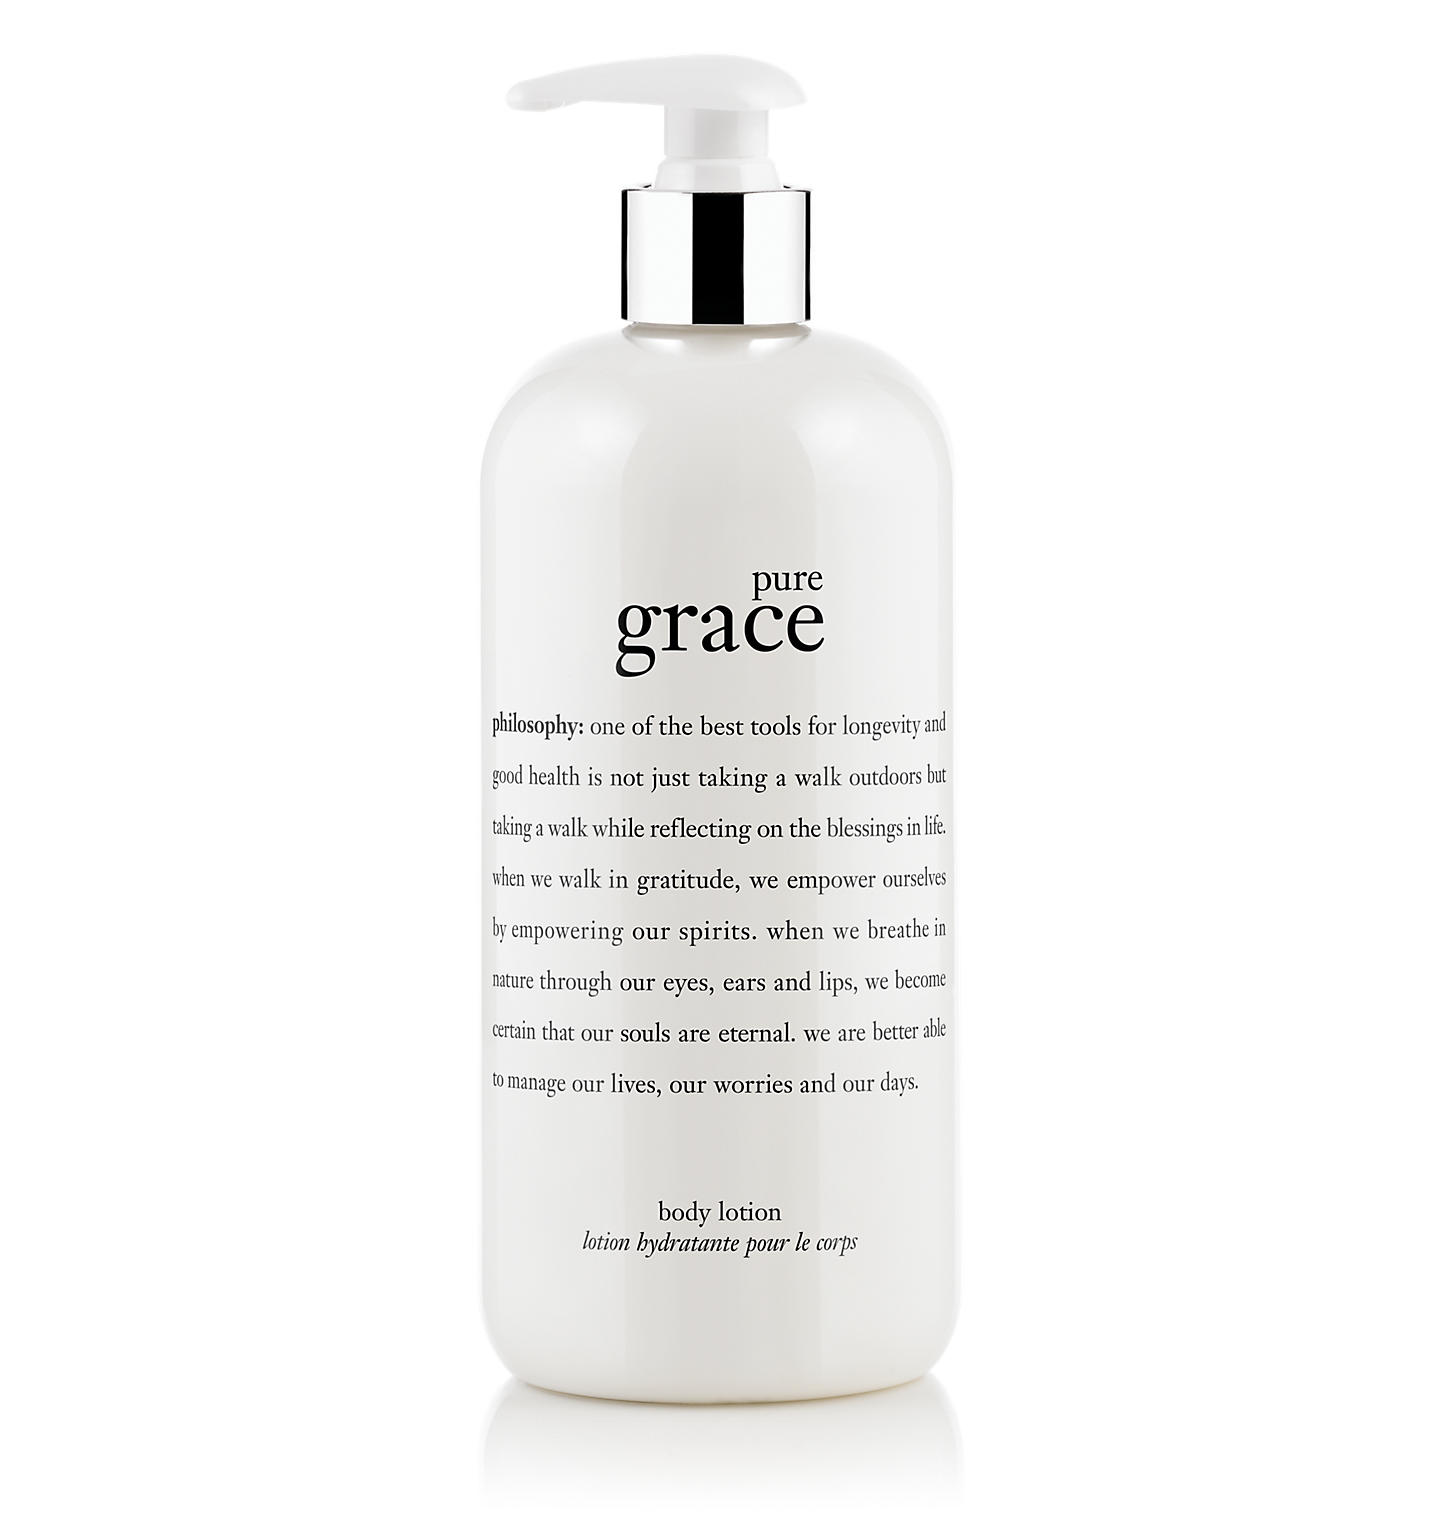 philosophy, pure grace body lotion